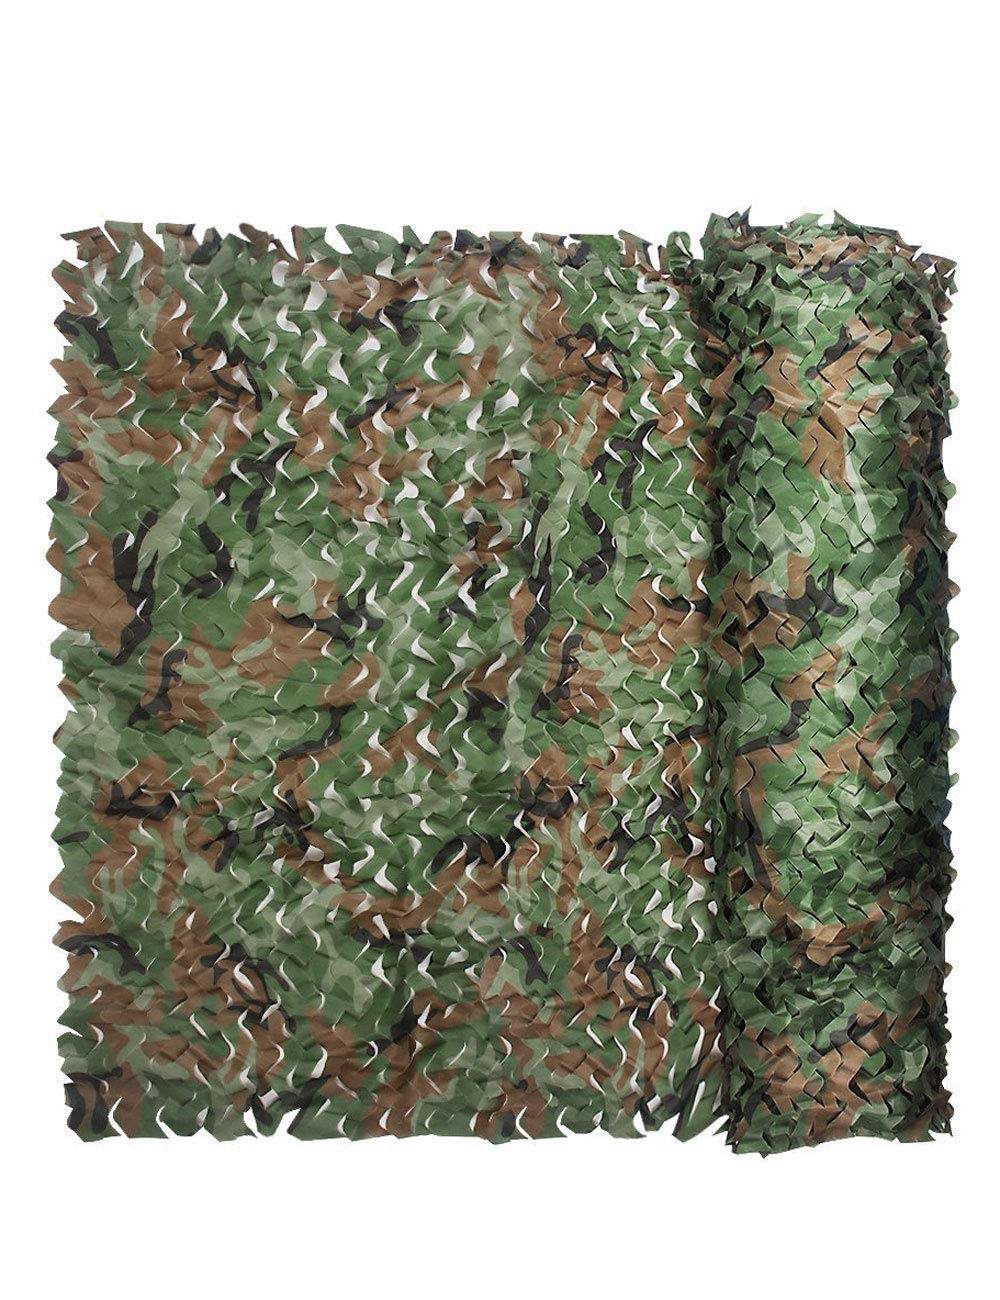 22.3FT×22.3FT  Qifengshop Camouflage Militaire BÂche Net boisland Camouflage Prougeection Solaire Camping 2M × 3M Oxford Tissu Convient pour Tente Camping Tir Chasse